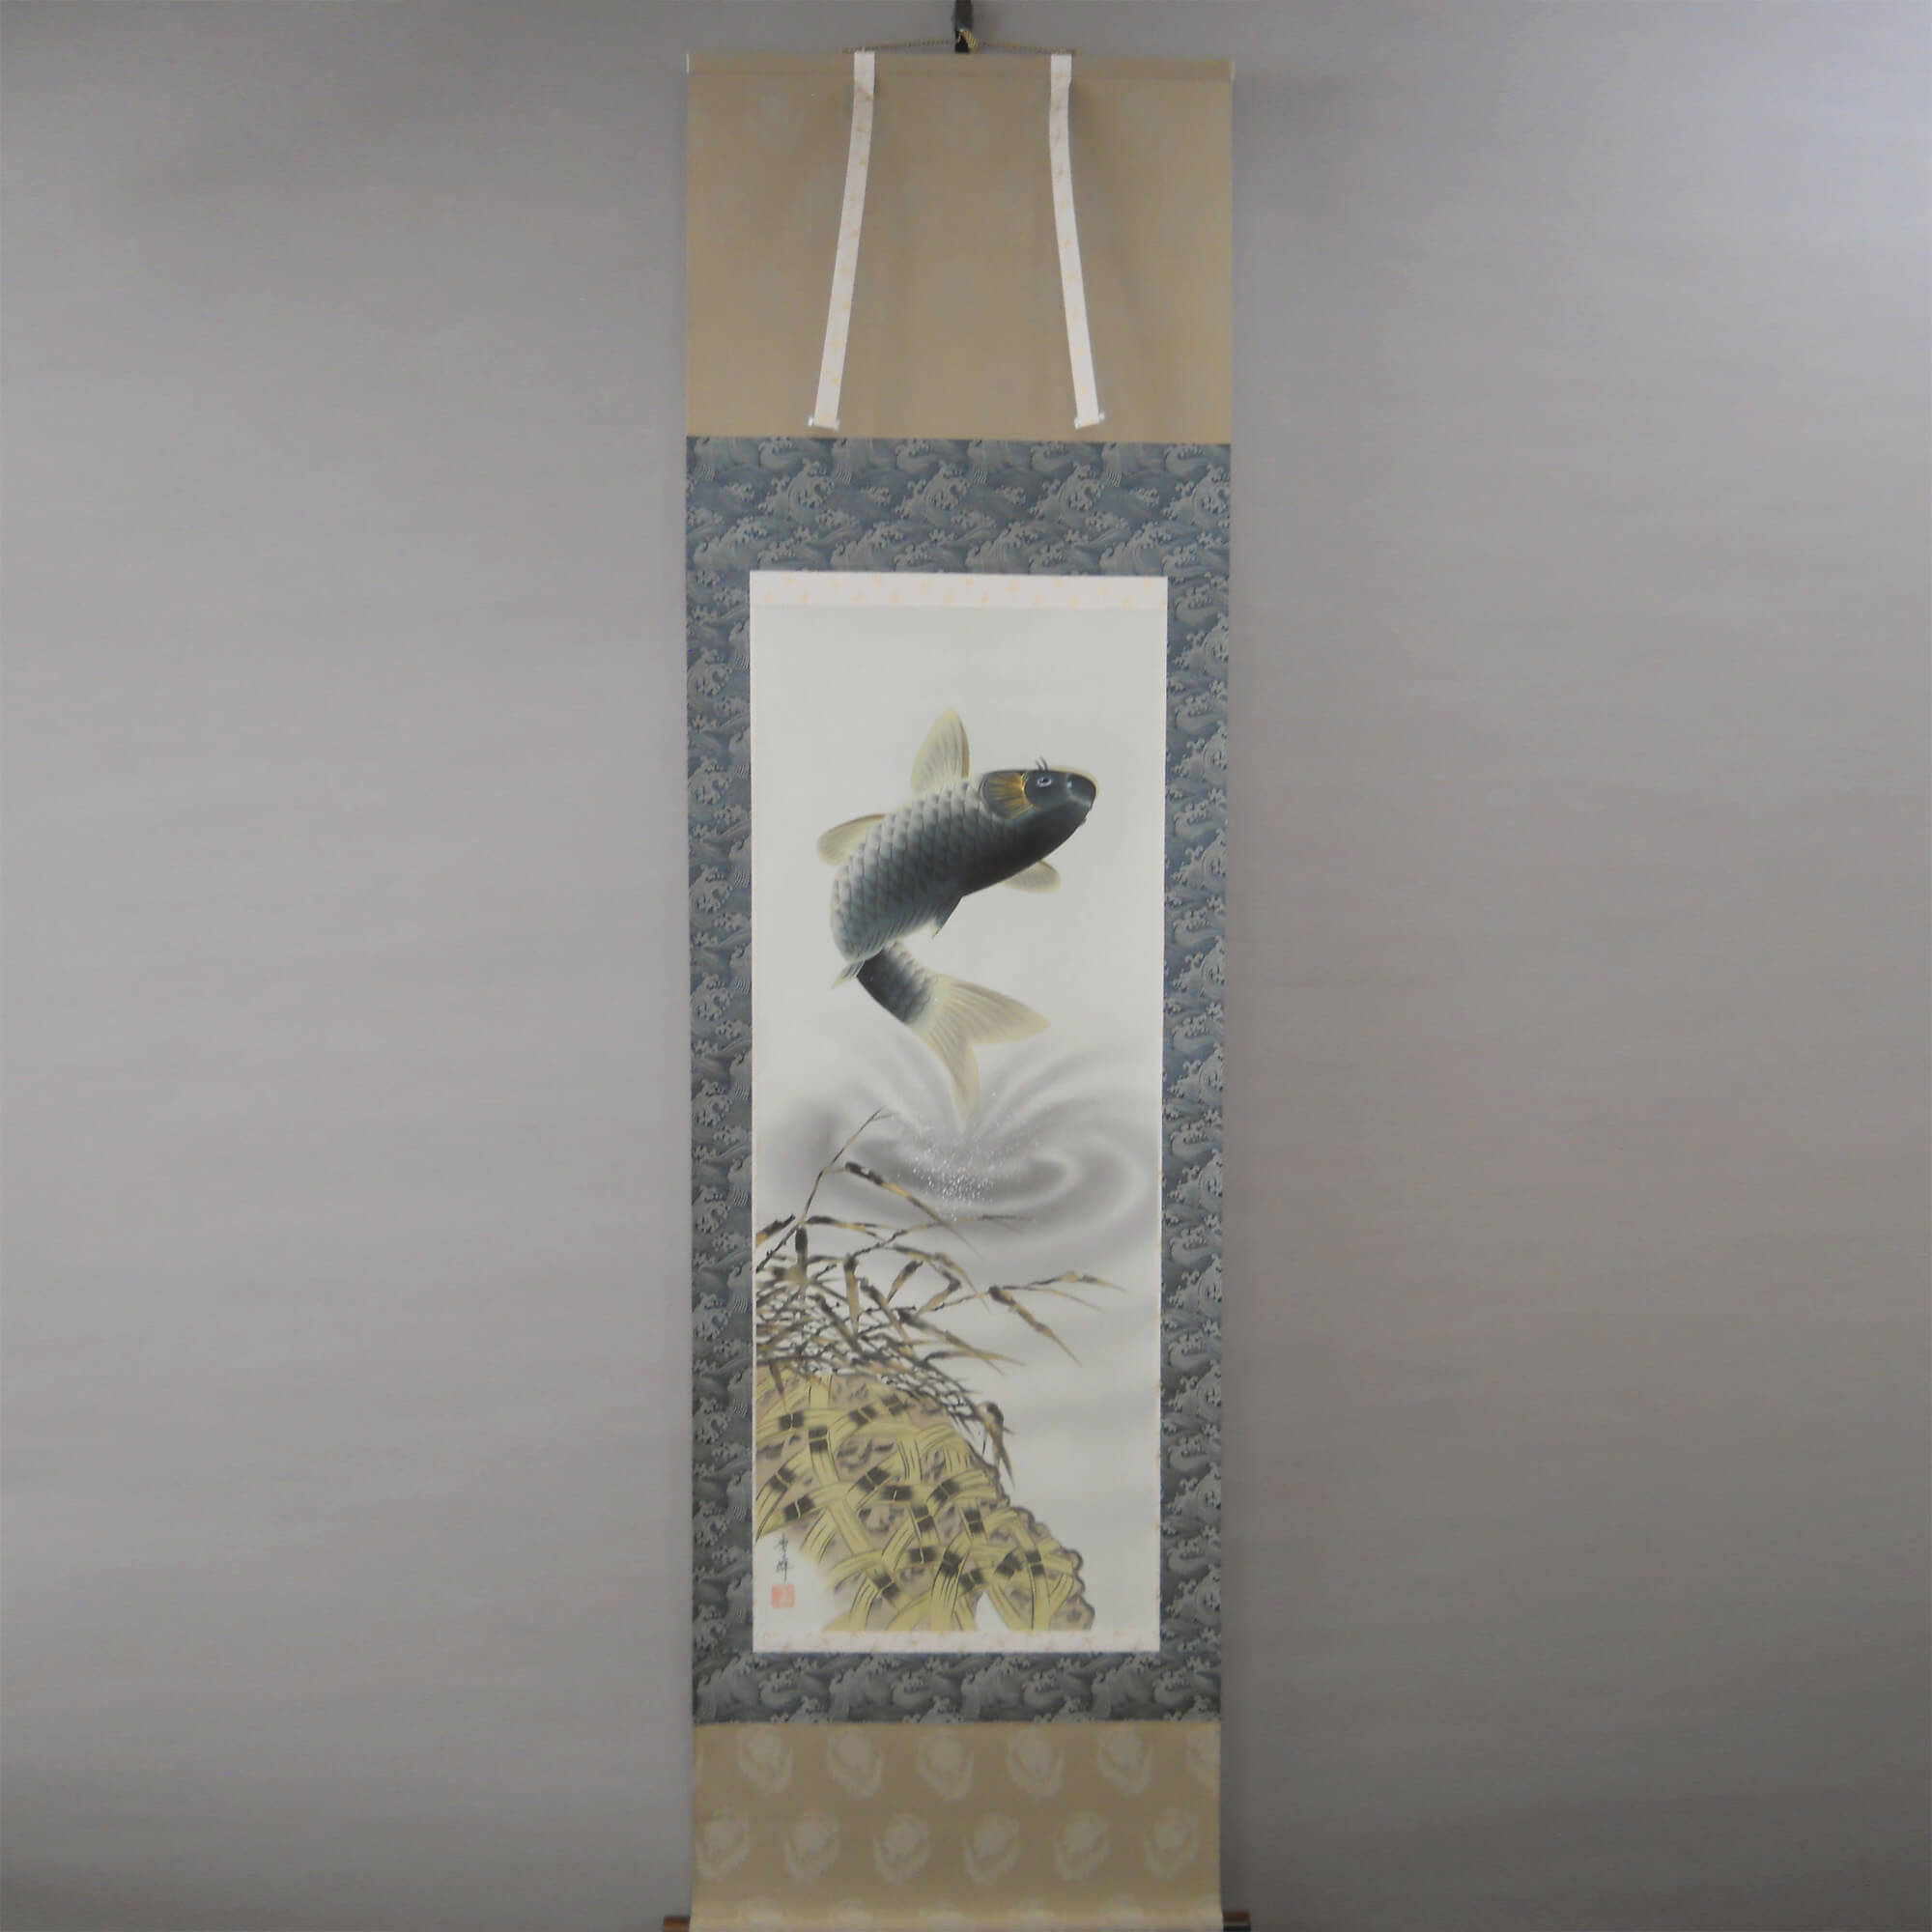 Koi Fish (Carp) Jumping out of the Water / Shūhō Inoue